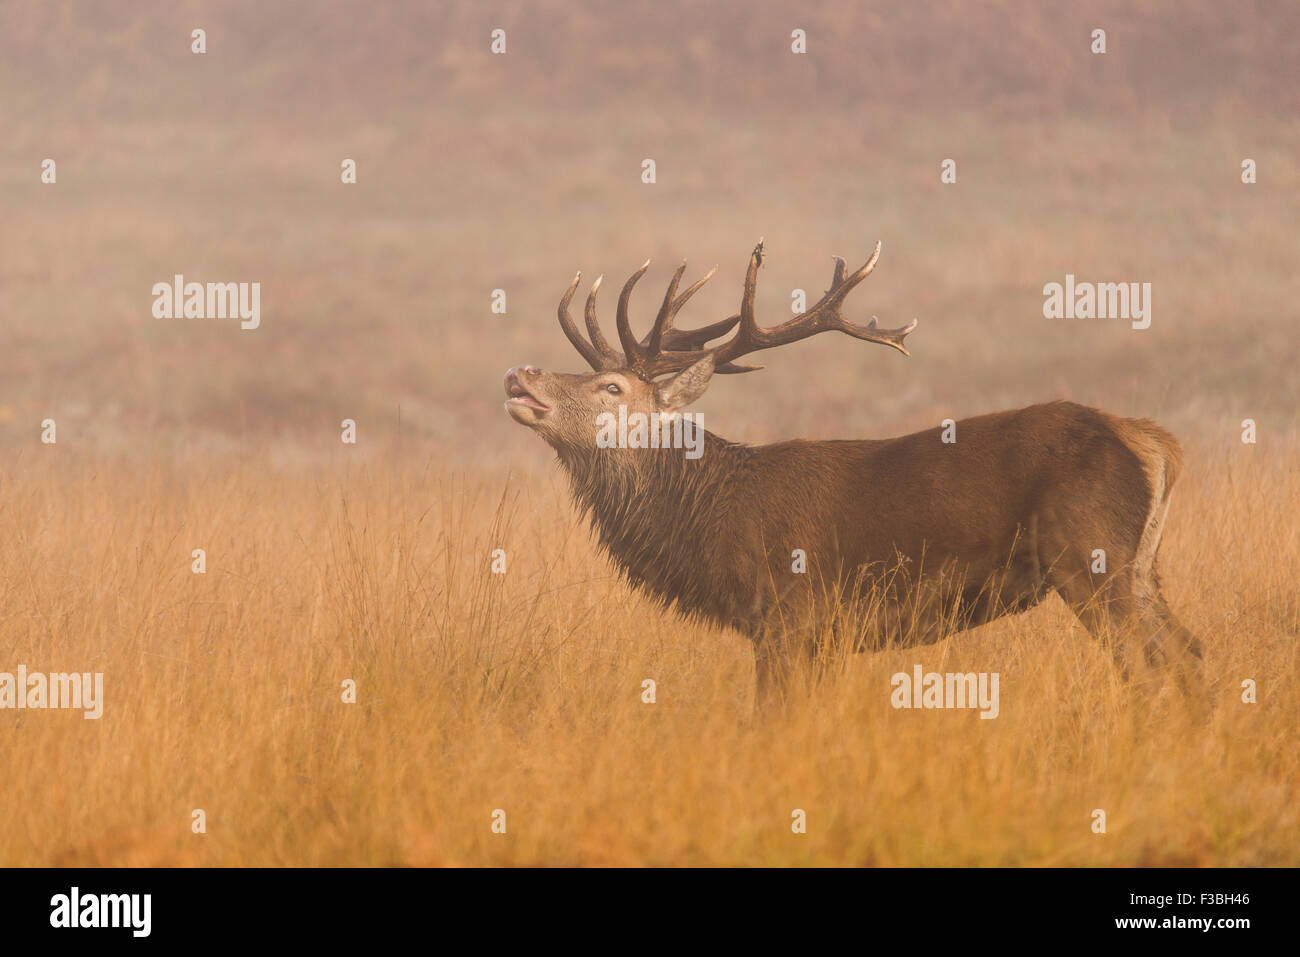 Large red stag in fog sniffing the air (flehmen response). - Stock Image